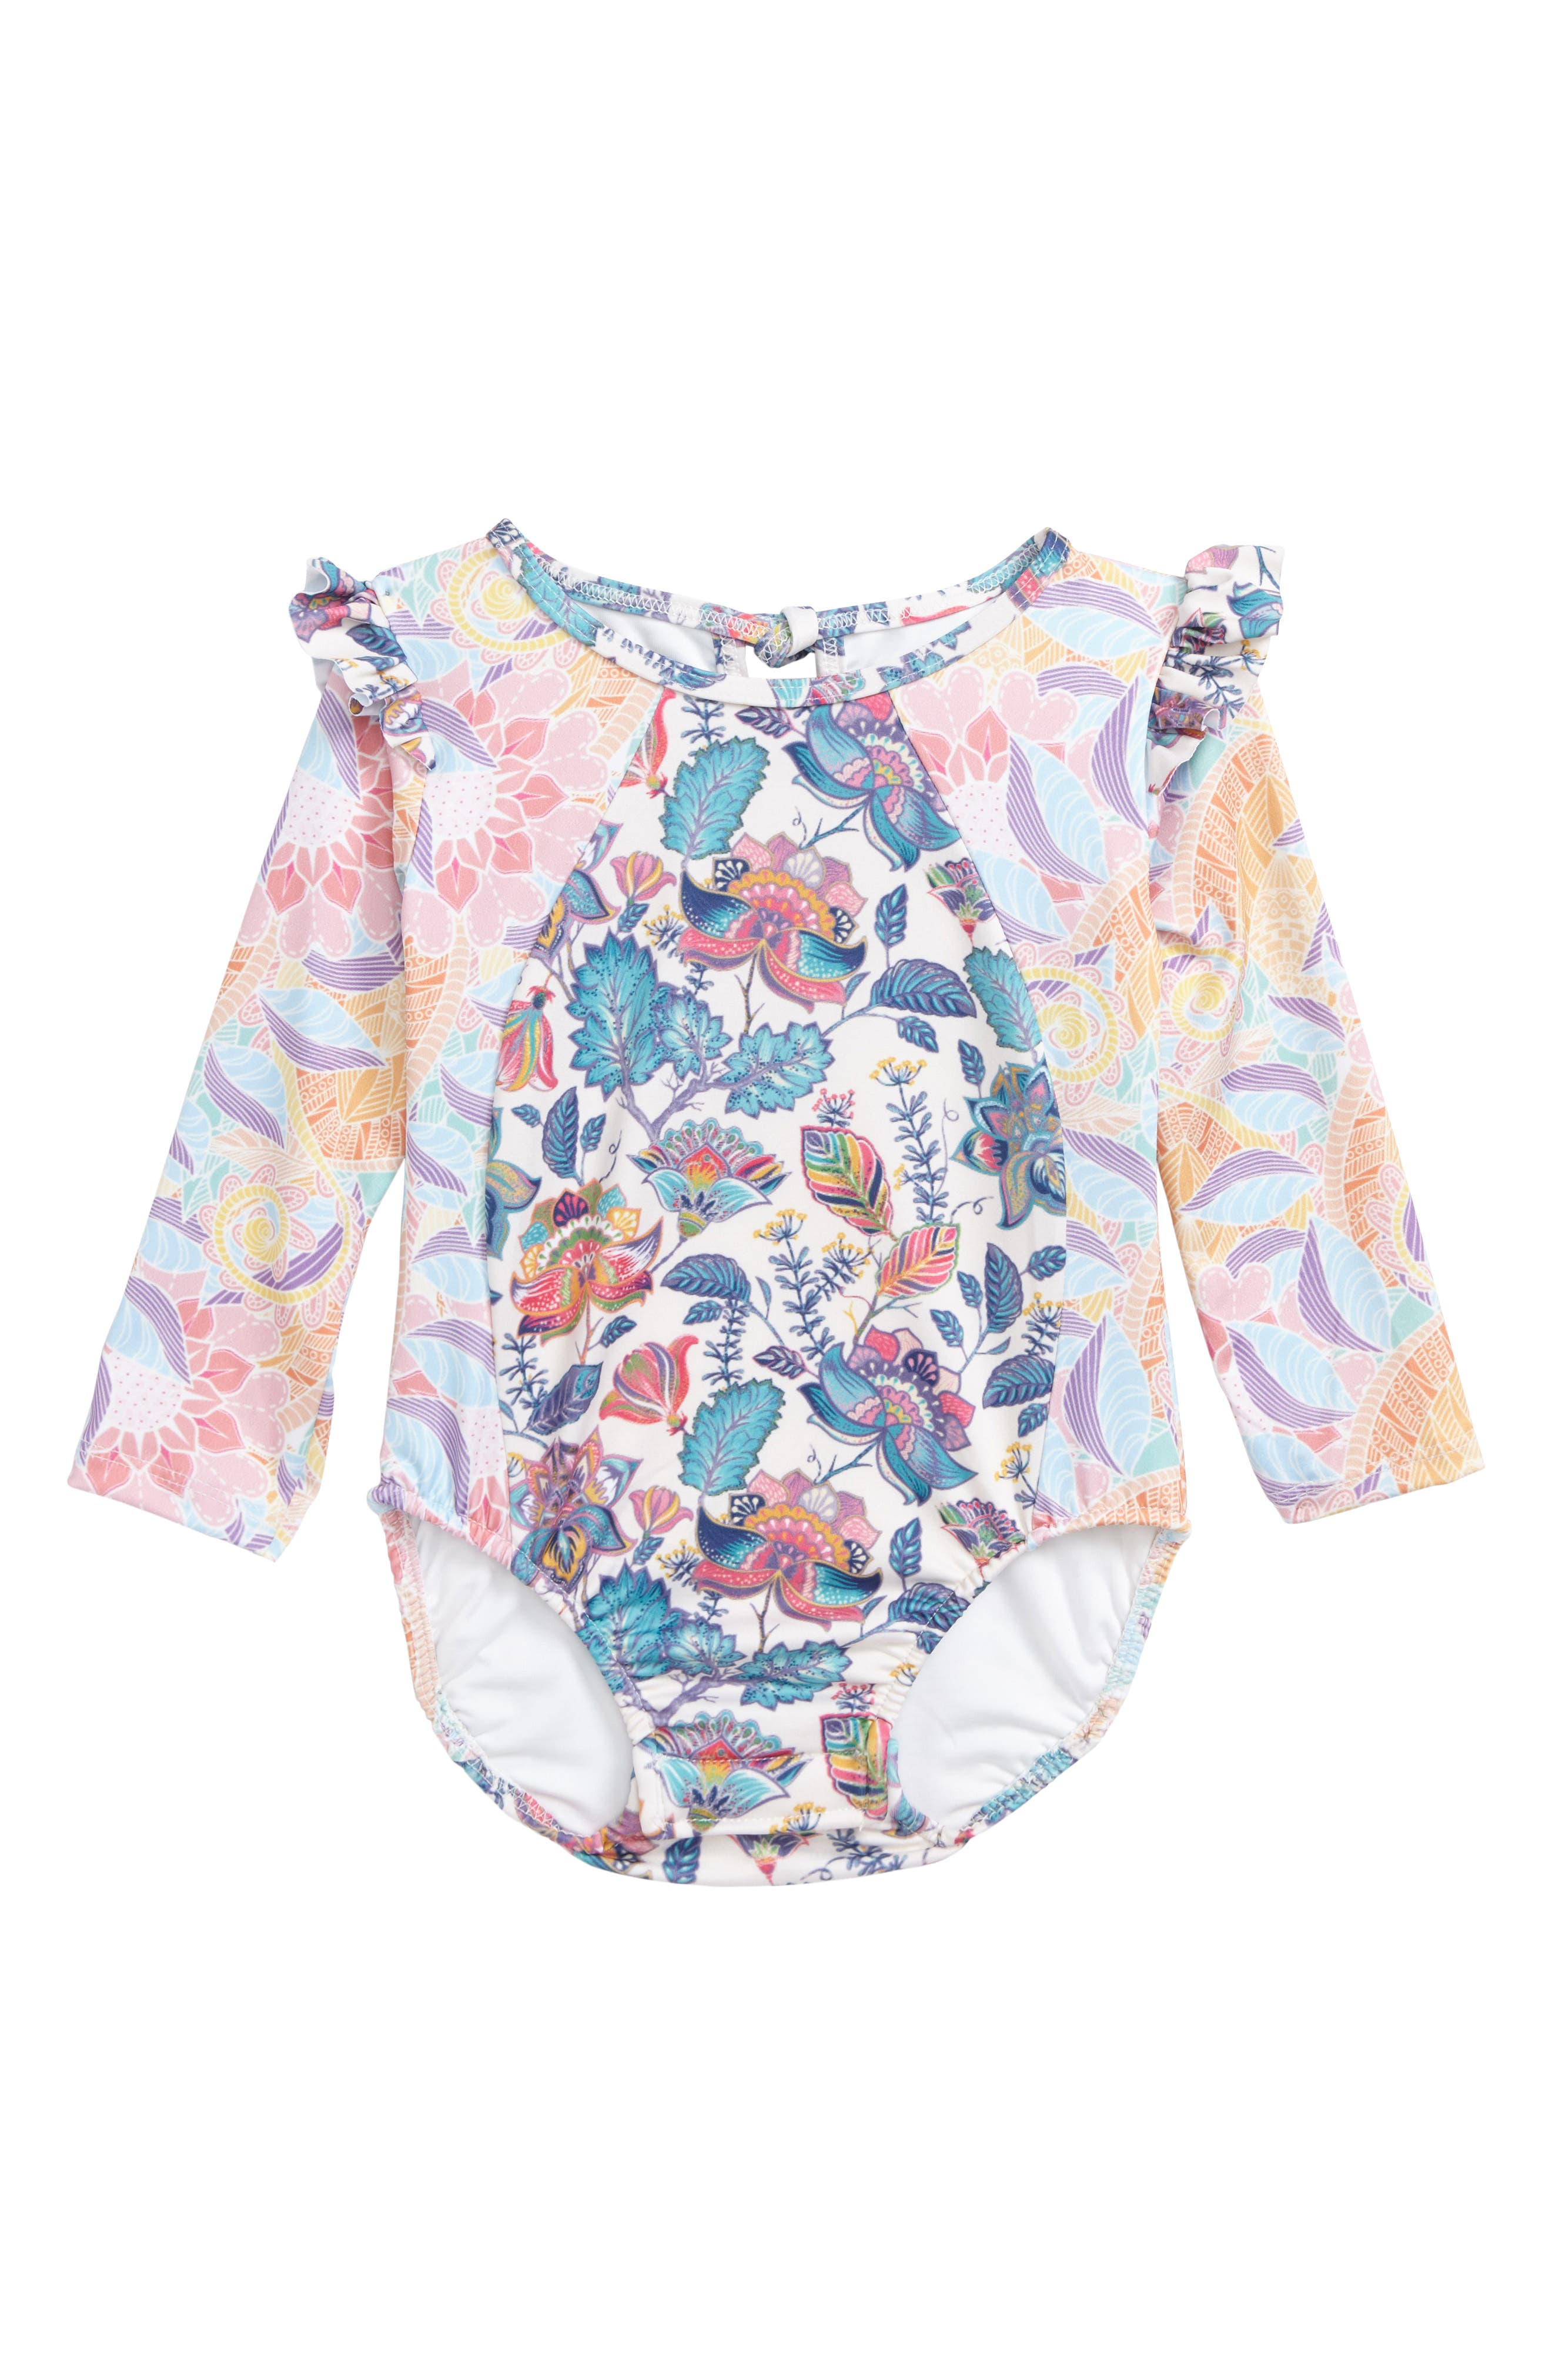 The Salty Baby One-Piece Rashguard Swimsuit (Toddler Girls)